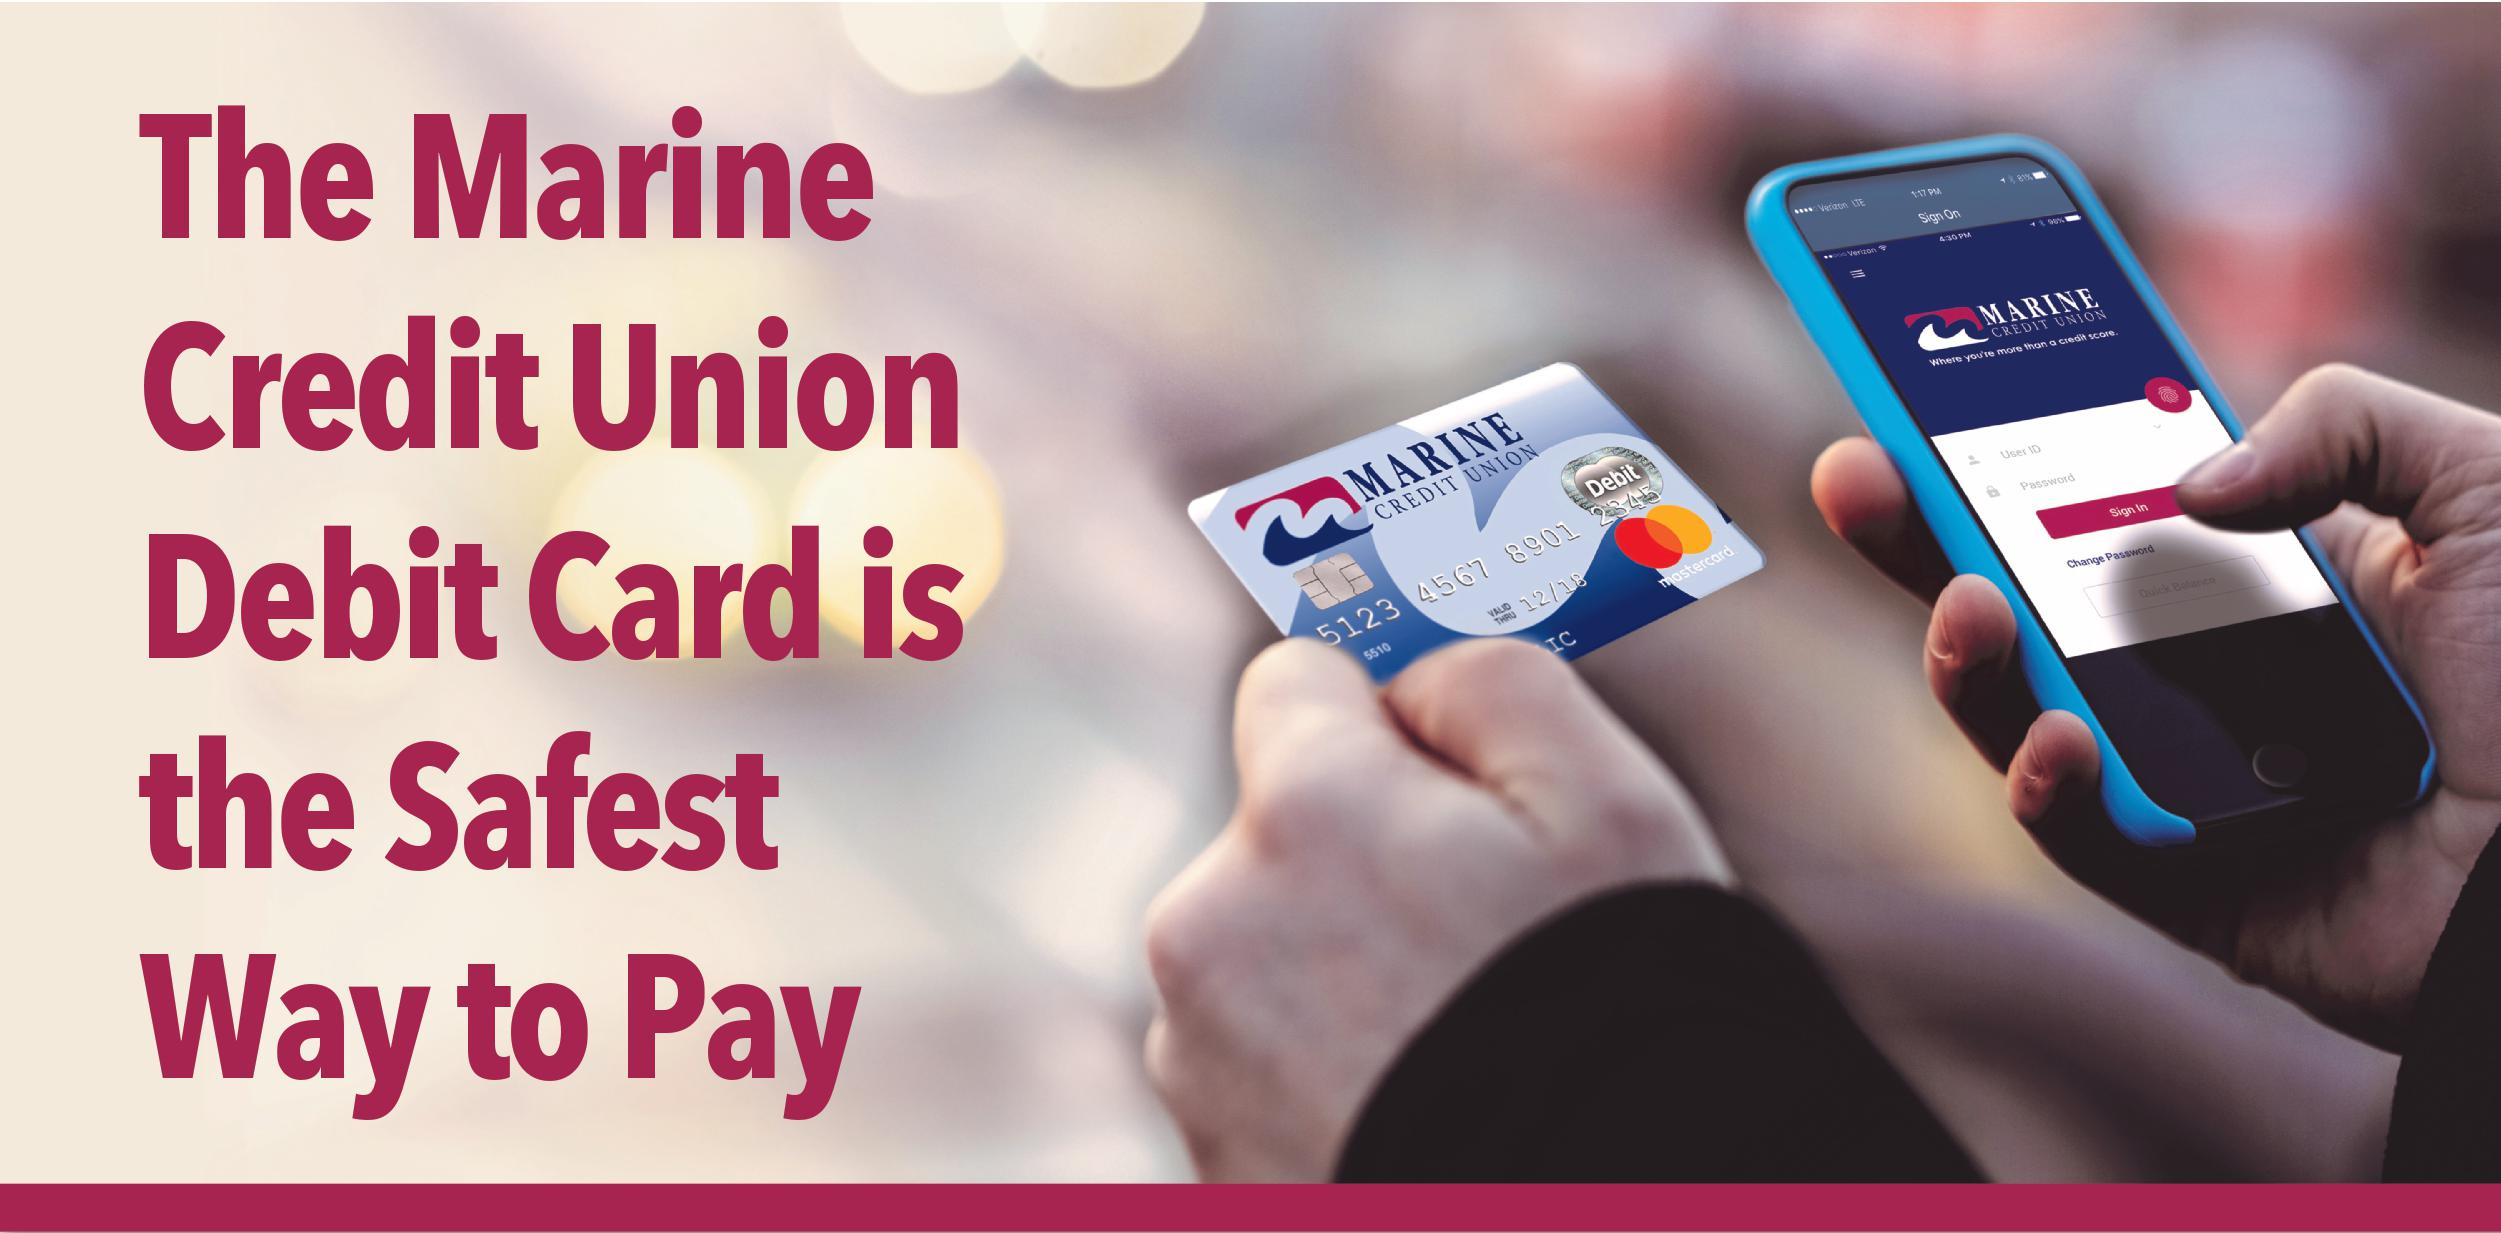 The Marine Credit Union Debit Card is the Safest Way to Pay